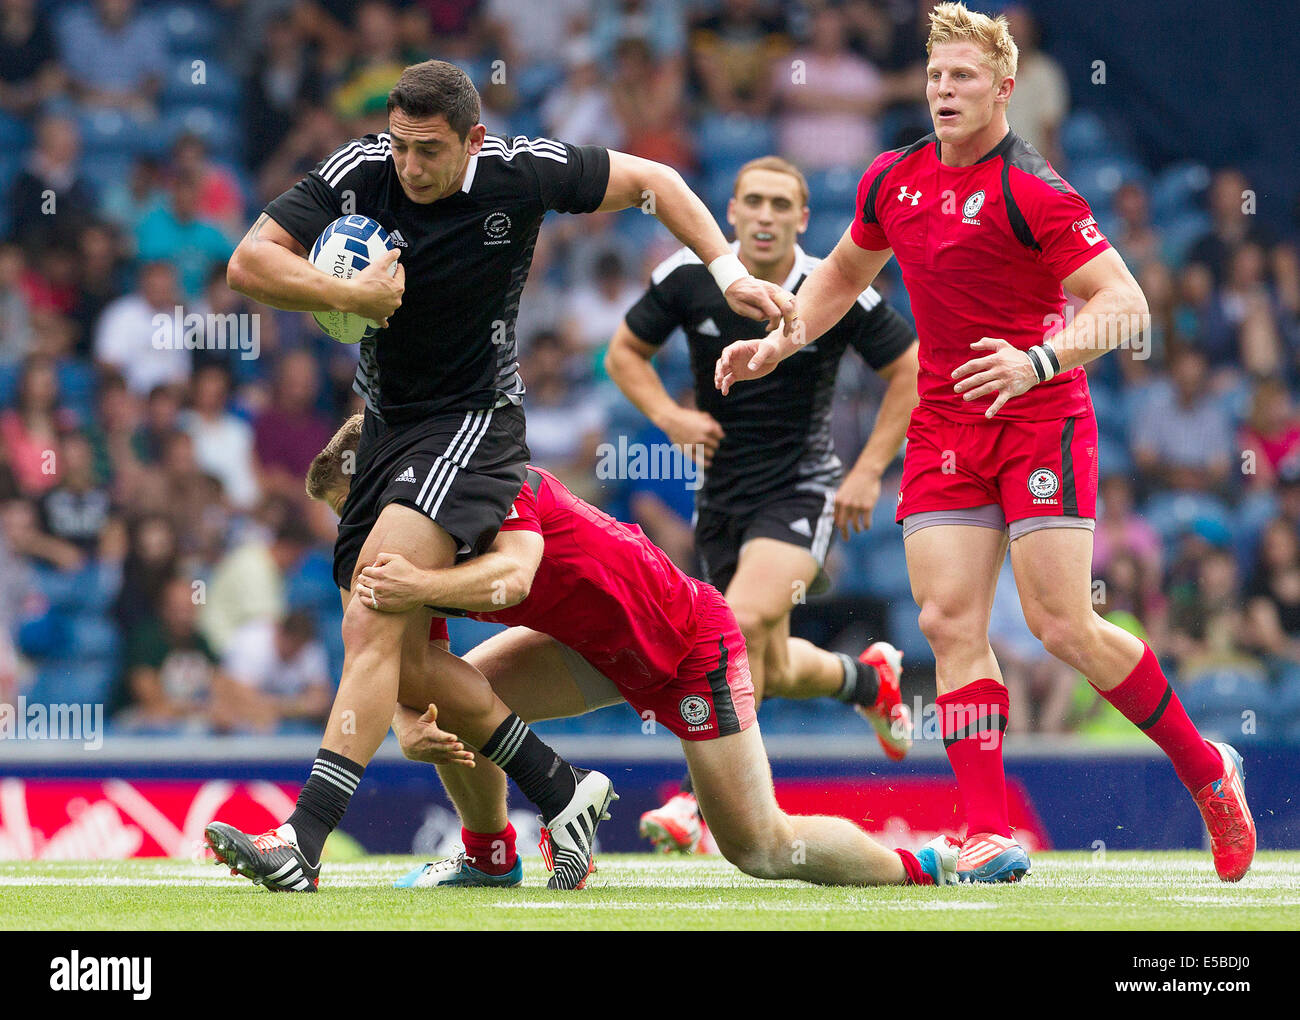 Glasgow, Scotland. 26th July, 2014. Glasgow Commonwealth Games. New Zealand's Bryce Heem's run is halted New Zealand Stock Photo